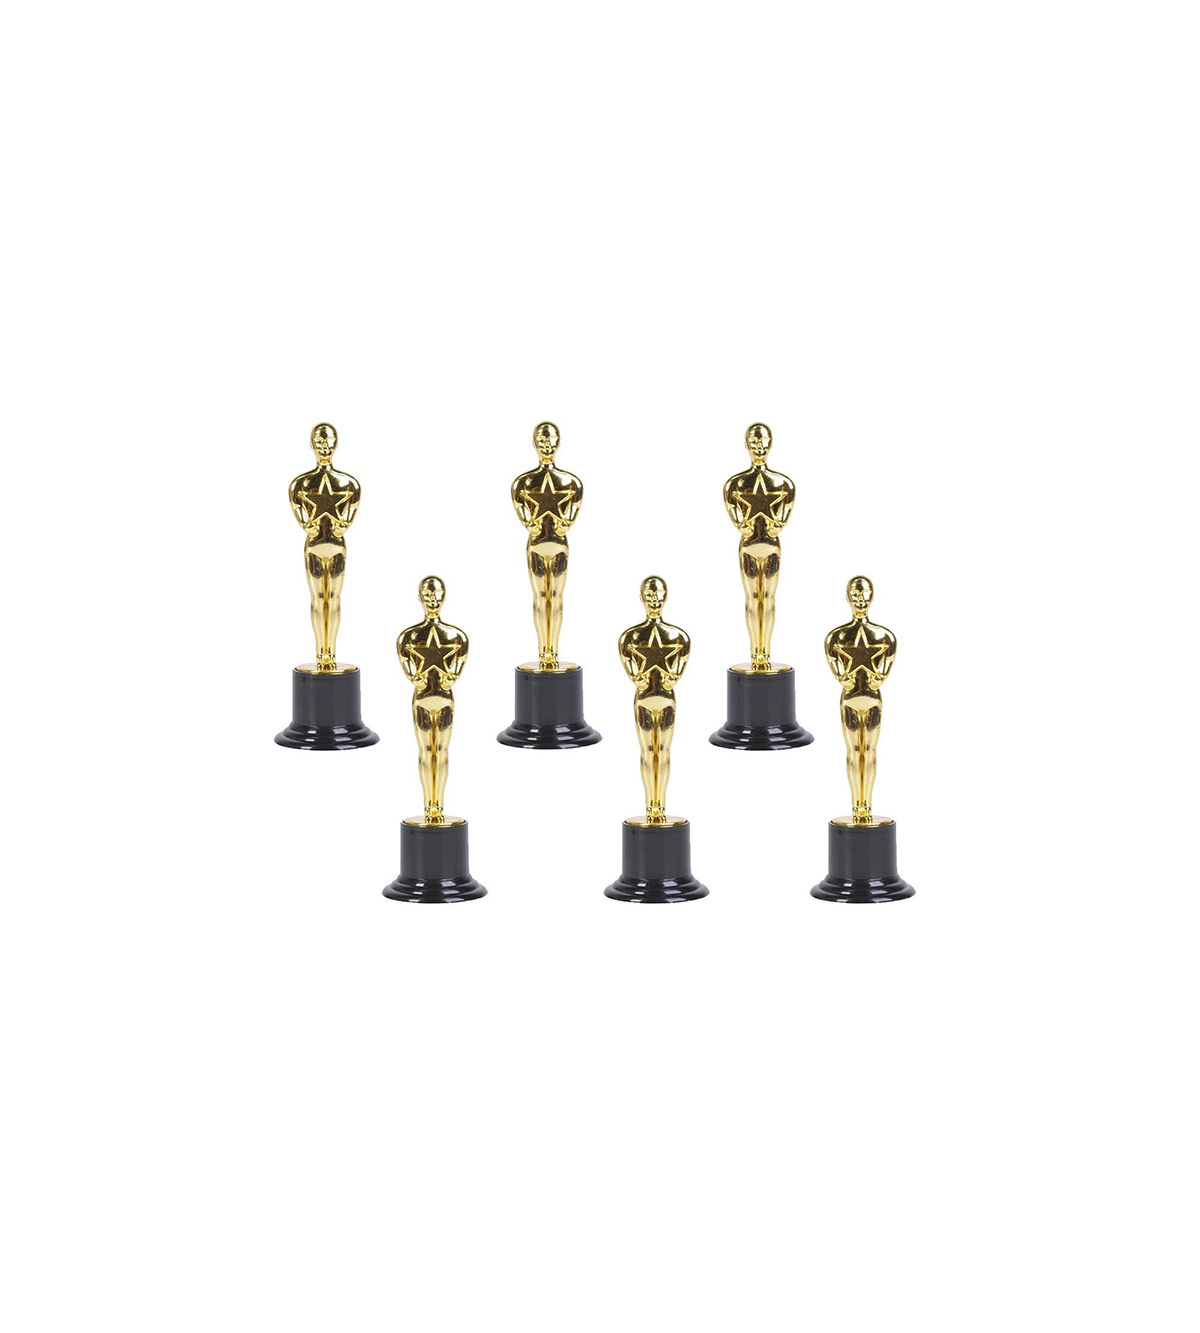 Gold Award Trophies